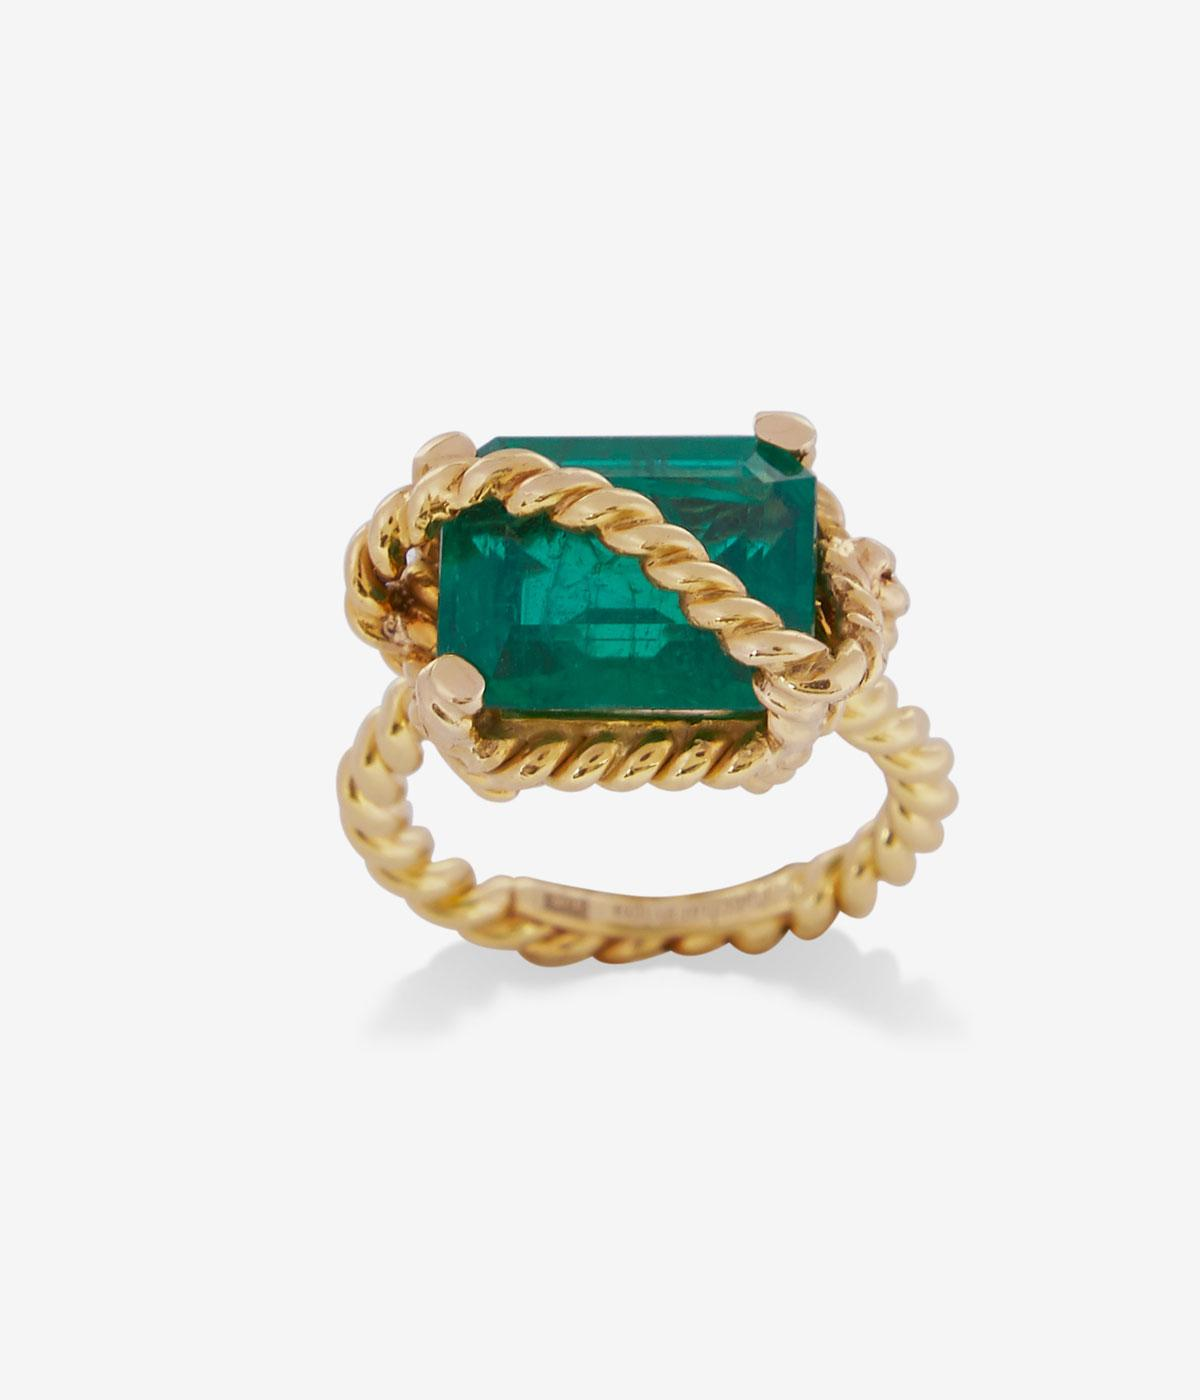 Emerald ring with gold rope crossing over it